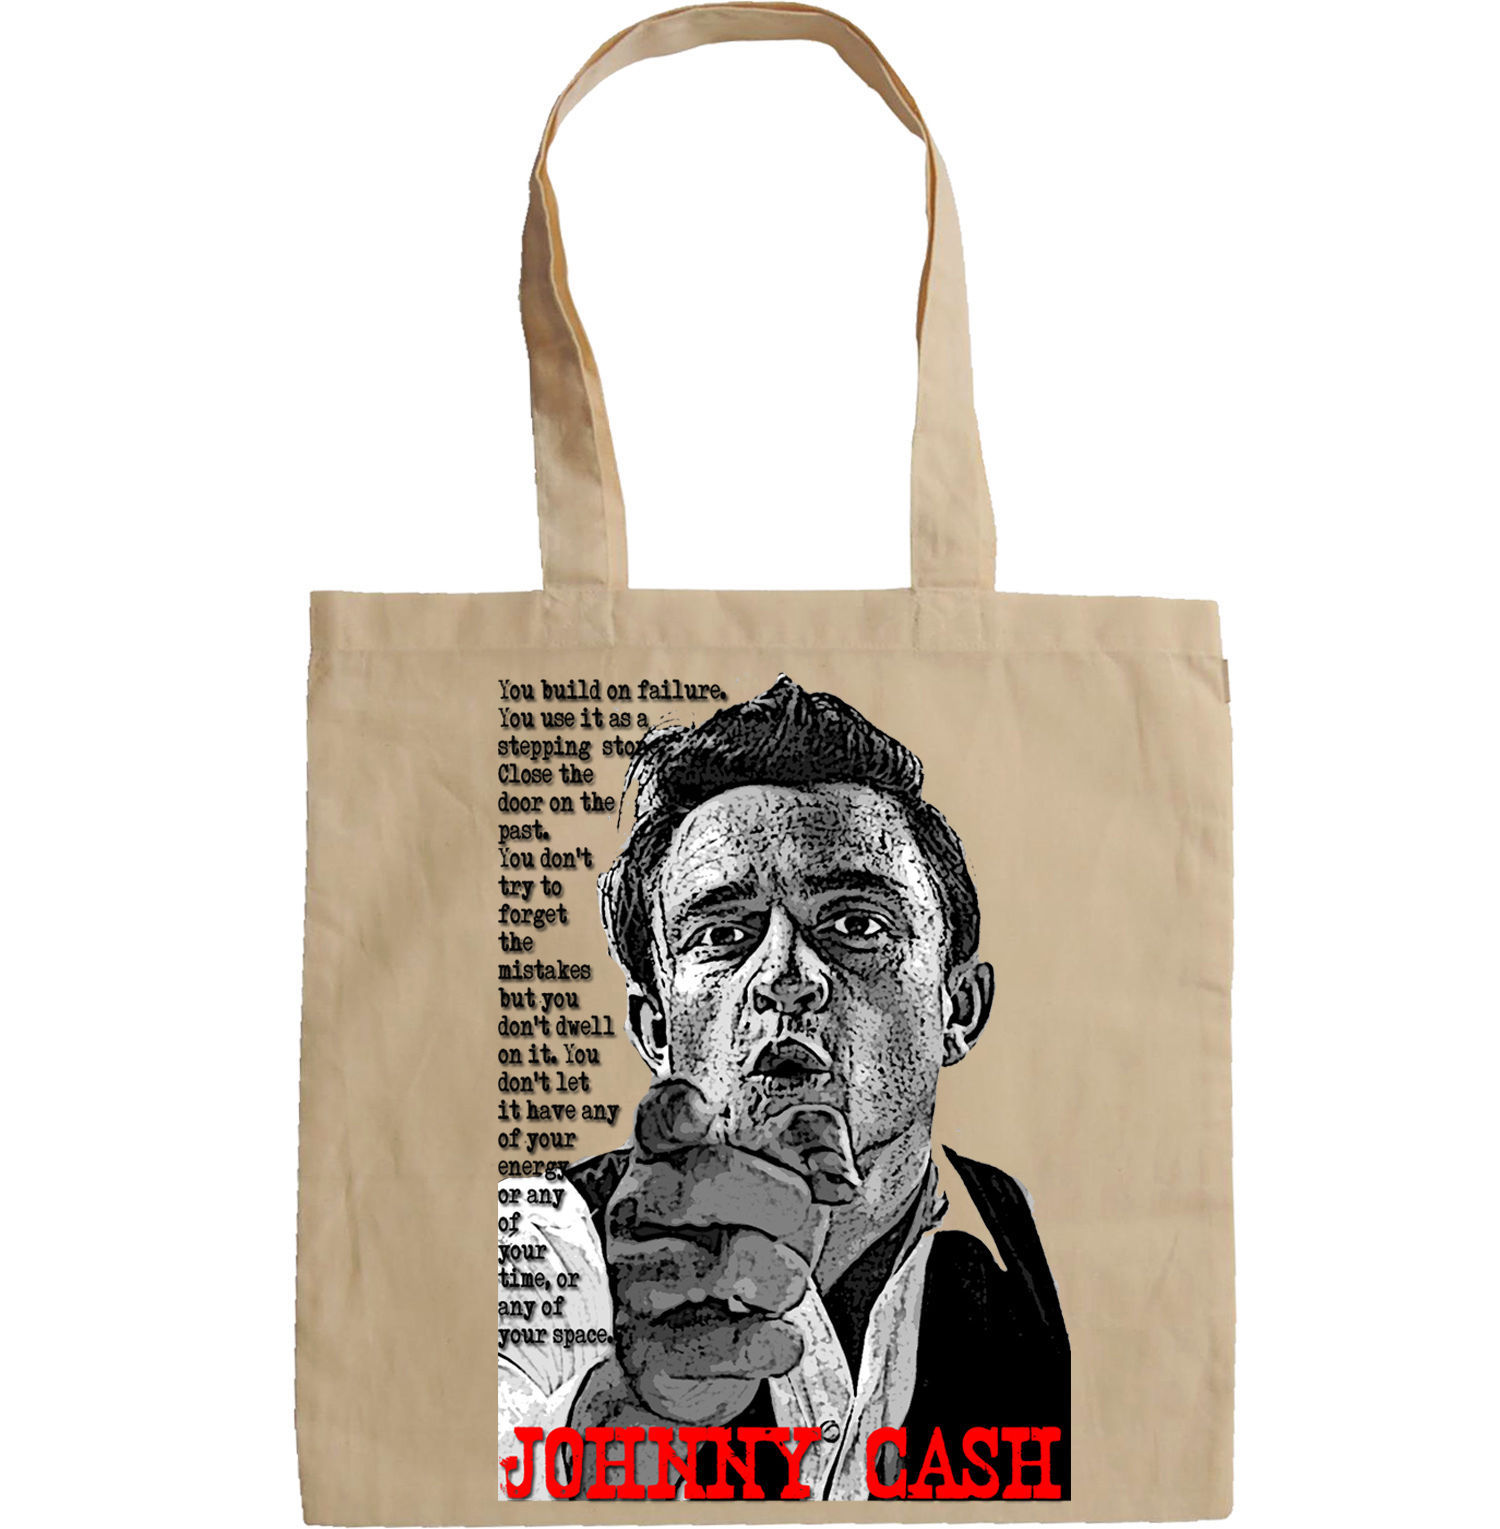 JOHNNY CASH SINGER LEGEND - NEW AMAZING GRAPHIC HAND BAG/TOTE BAG